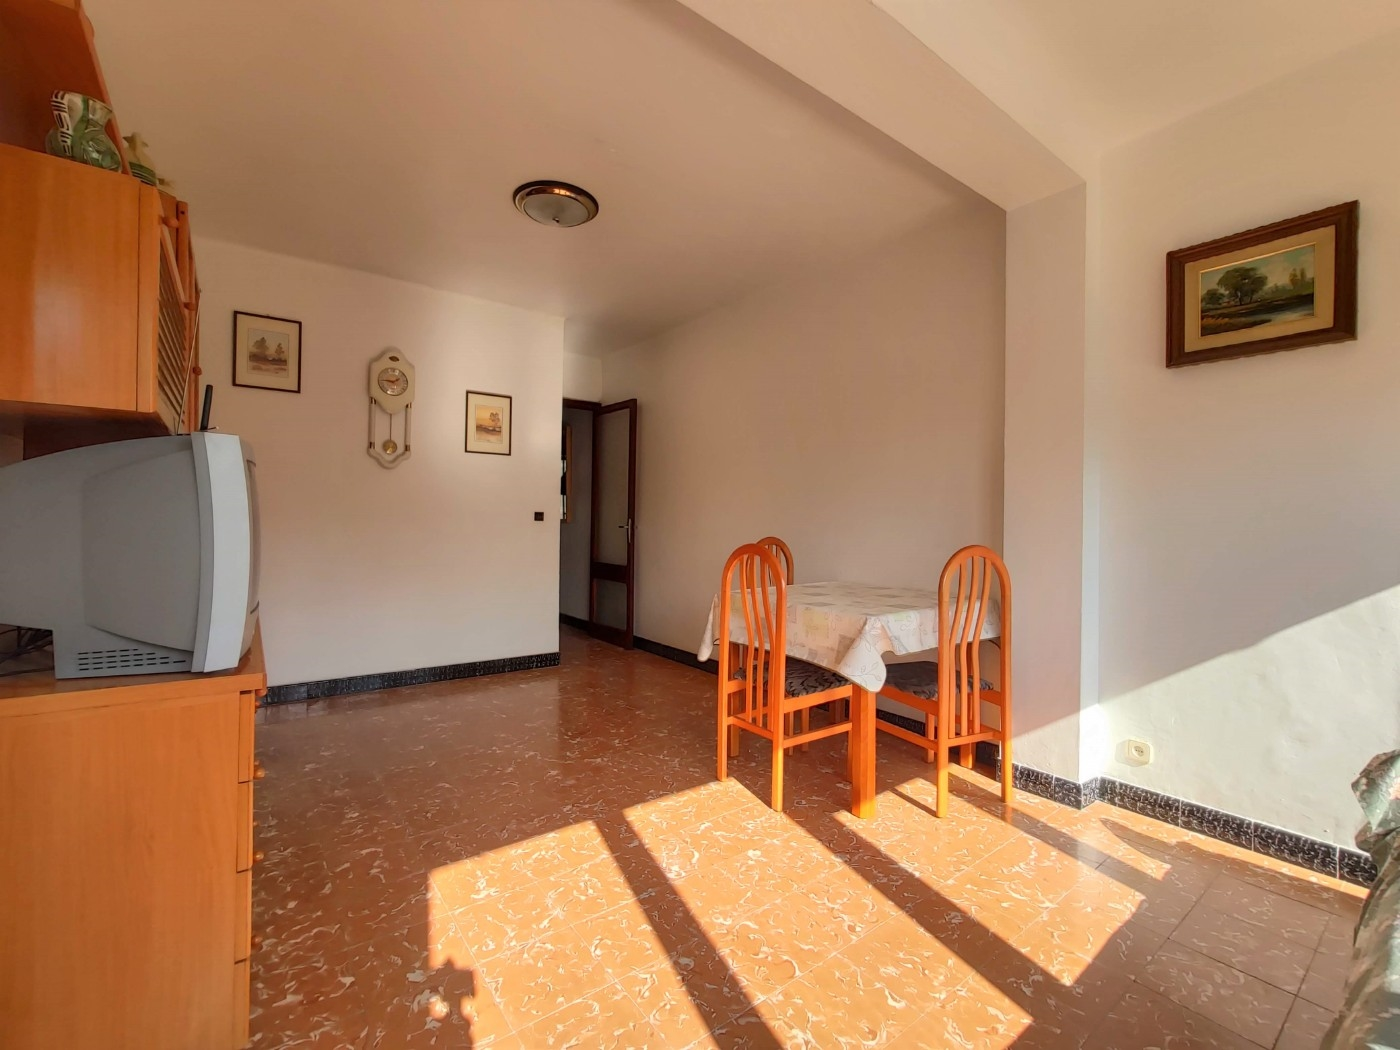 Apartment in Masquefa - barcelona surroundings. Private garden, Private parking, Balcony, Terrace.4 bedrooms. For sale: 170.000 €.